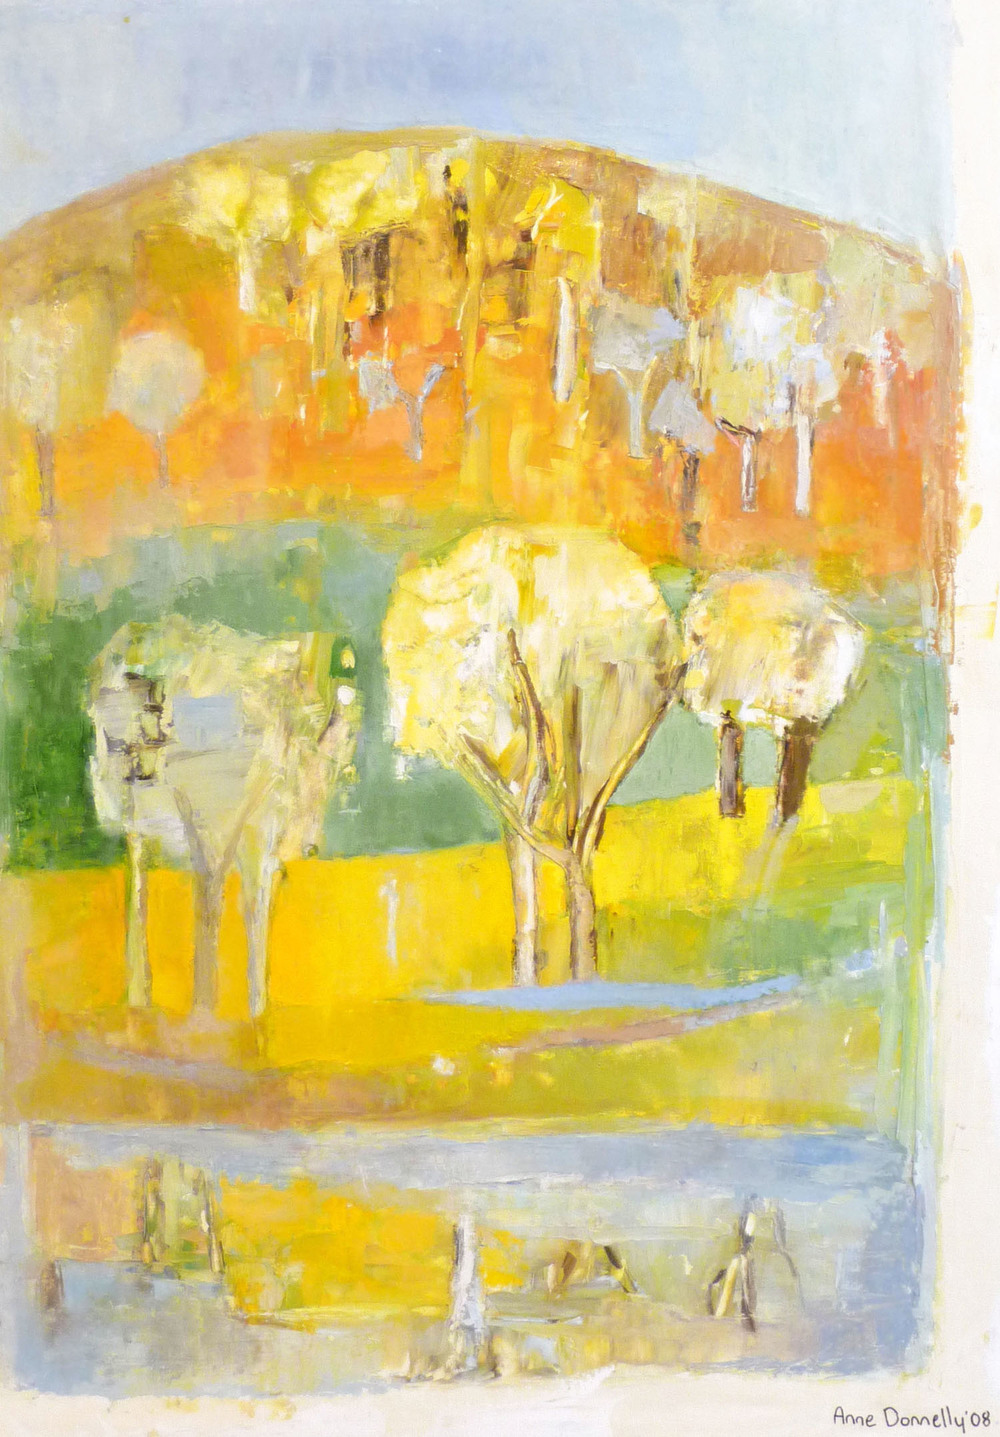 Anne Donnelly_-_Trees on a Hill_oil on canvas_70 x 50cm.jpg